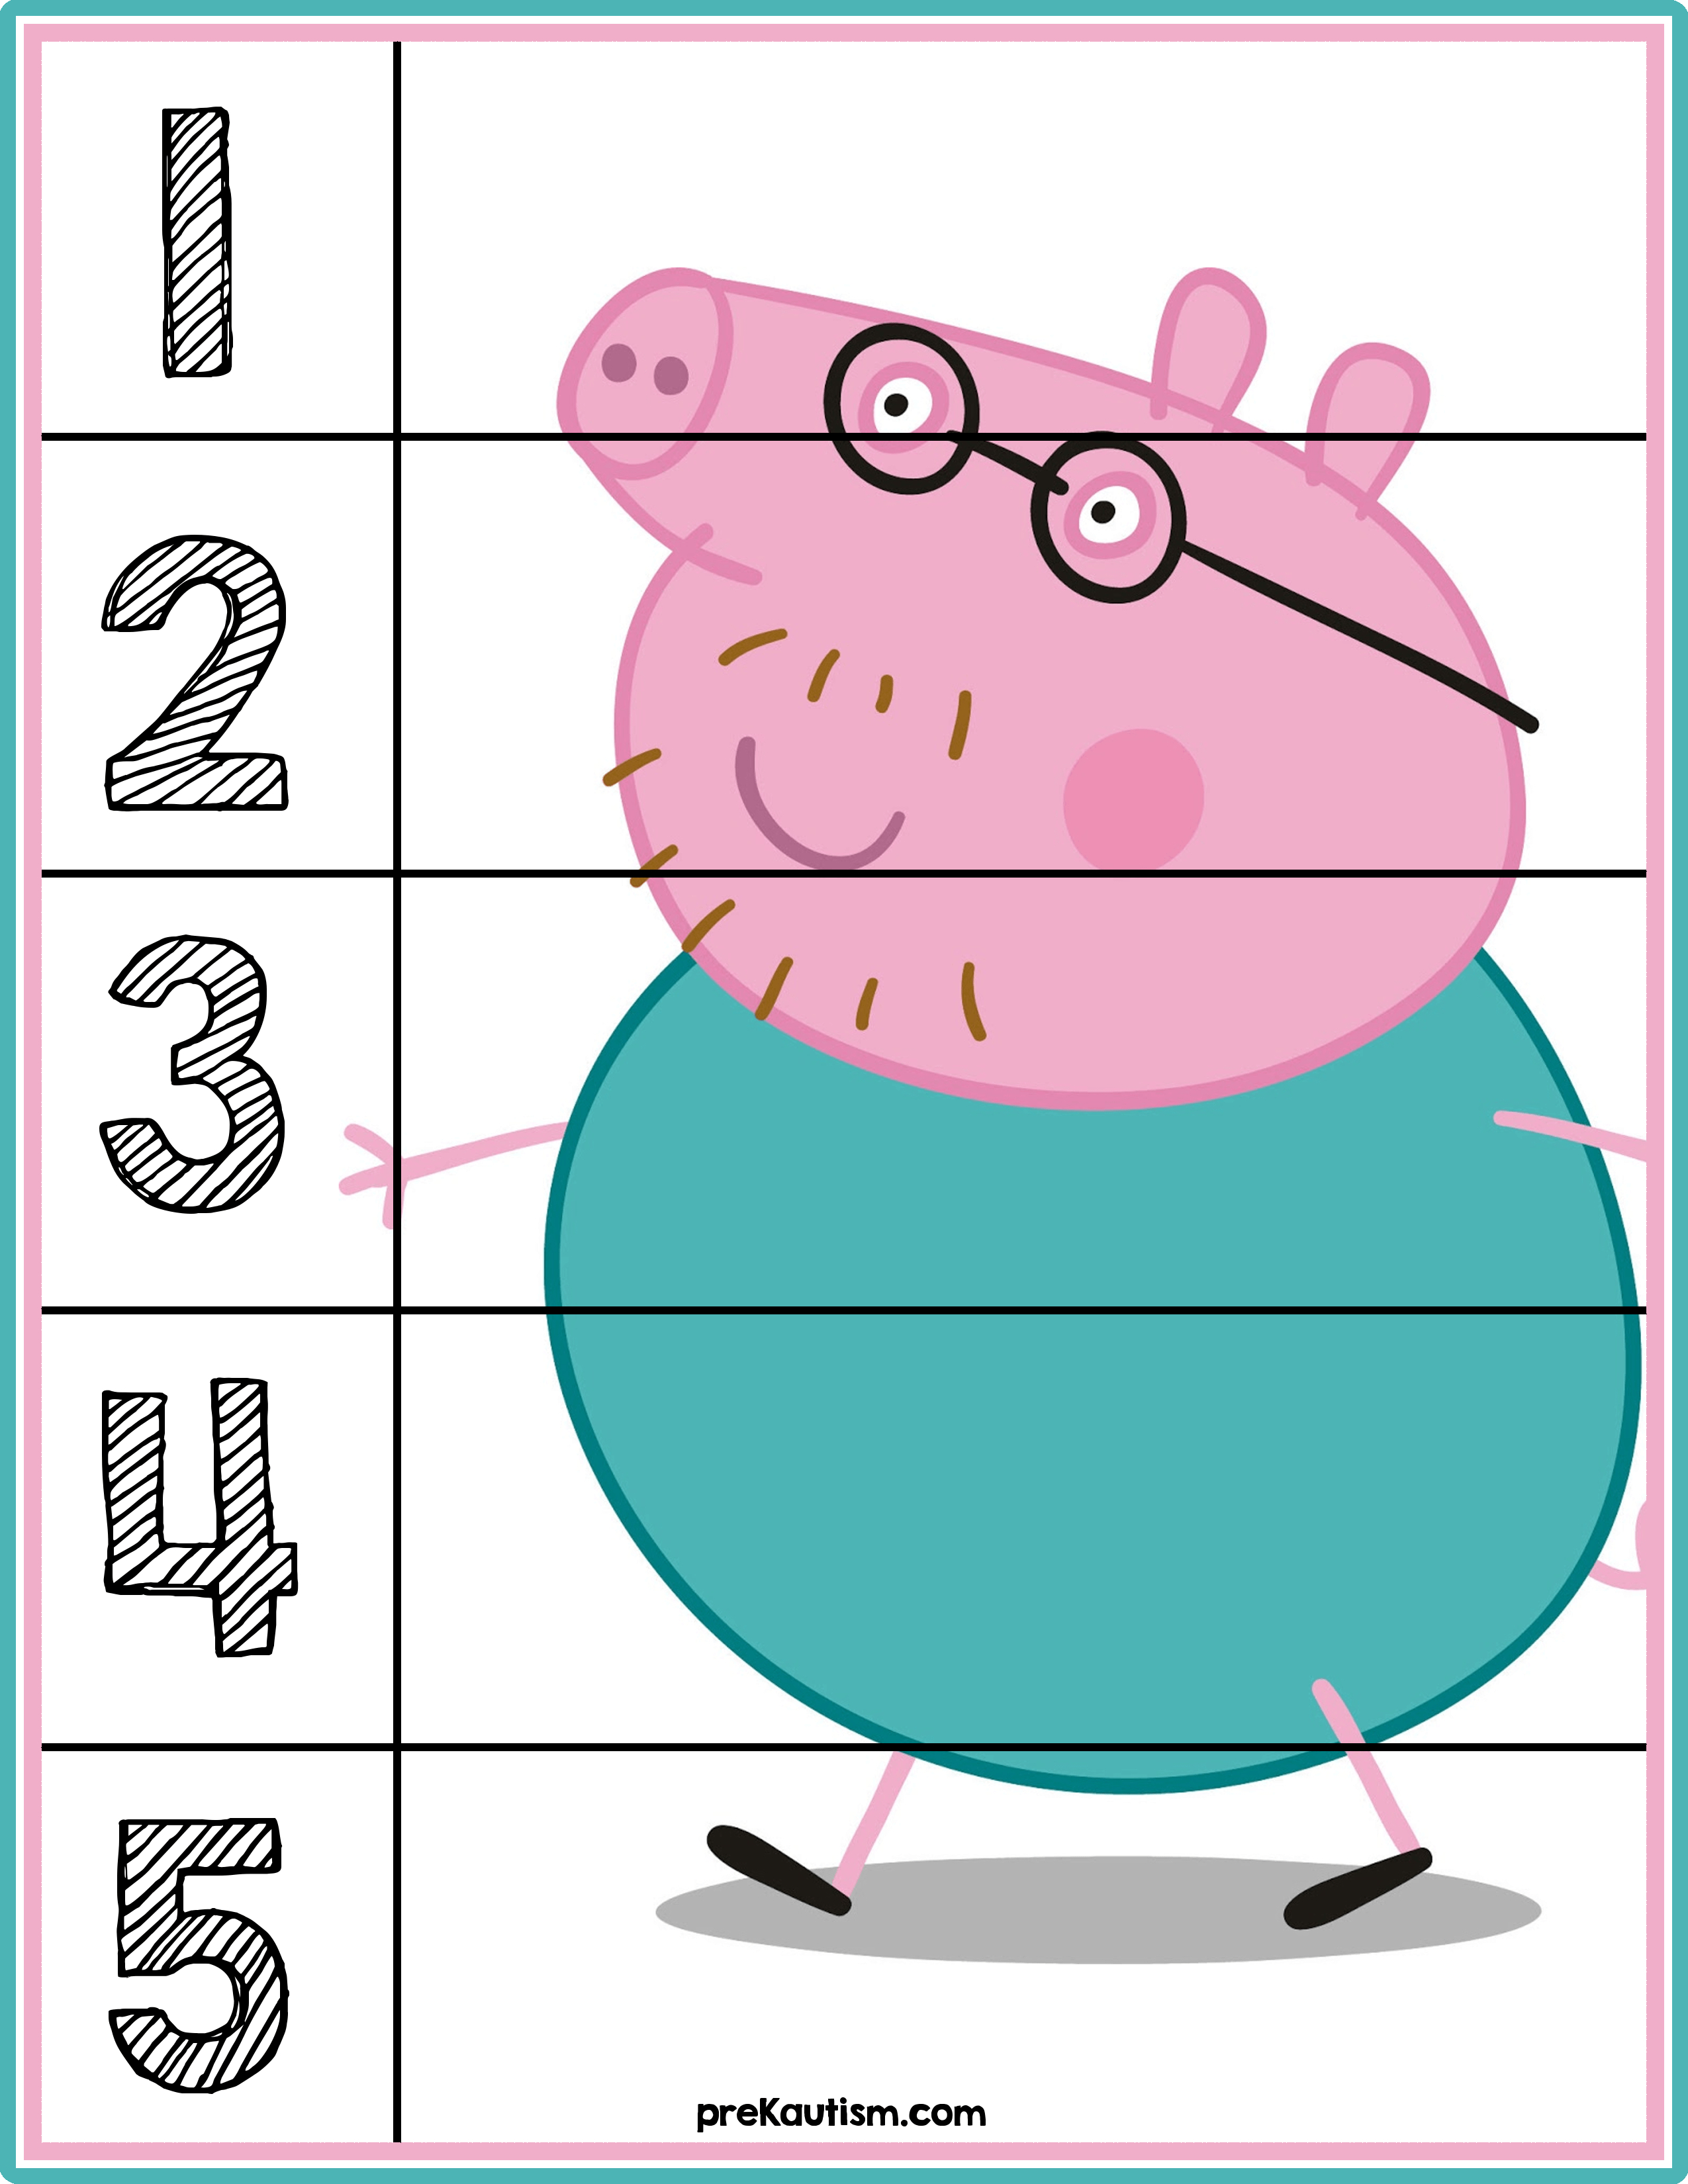 Peppa Pig Number Puzzles #'s 1-5 | Autism Activities For Ages 3-5 - Printable Puzzles For Preschoolers